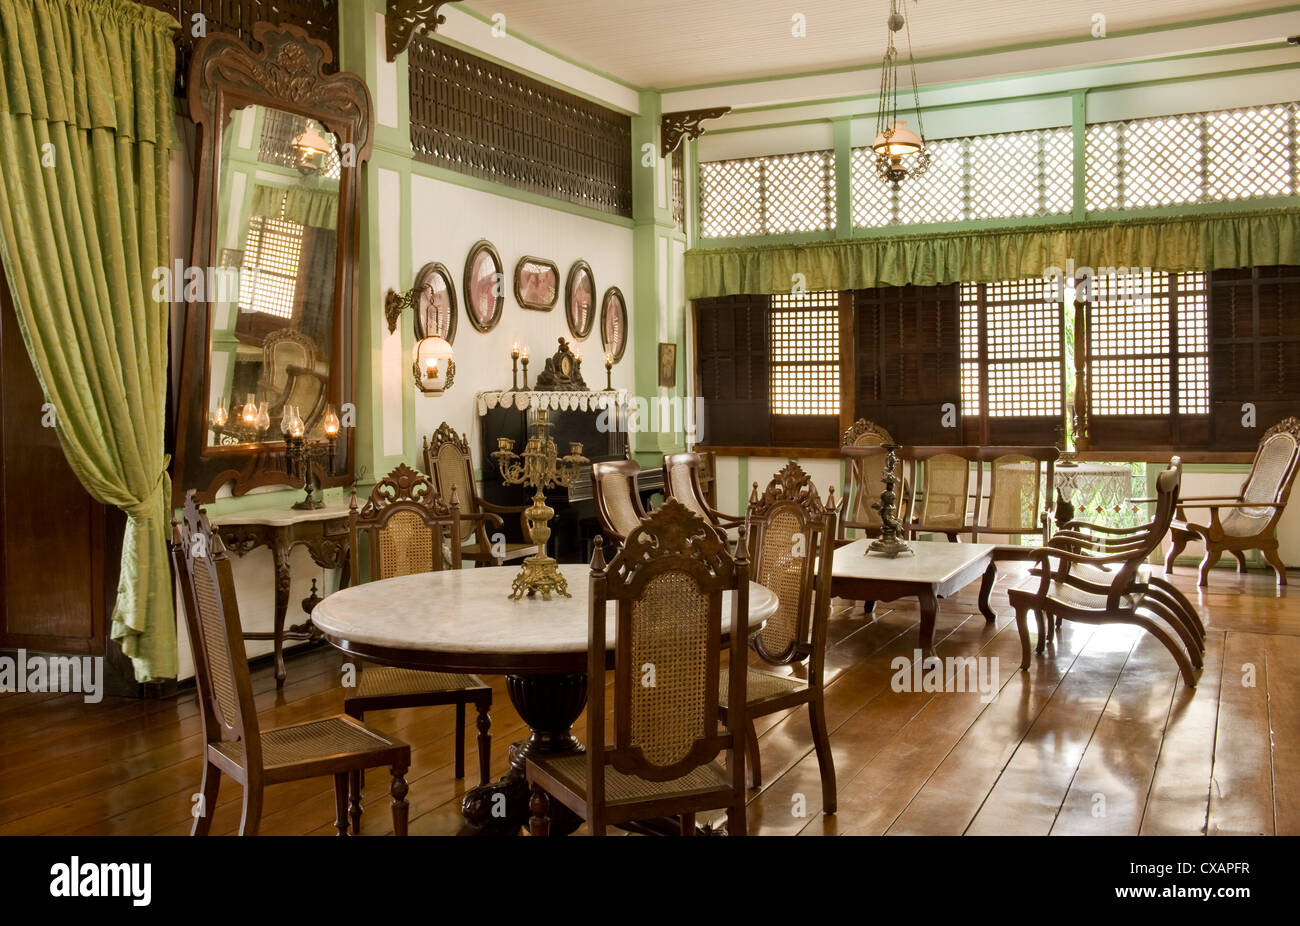 Main Sala Of The Pastor Heritage House Dating From 1883, A Classic Filipino  Style Bahay Na Bato In Batangas, Philippines